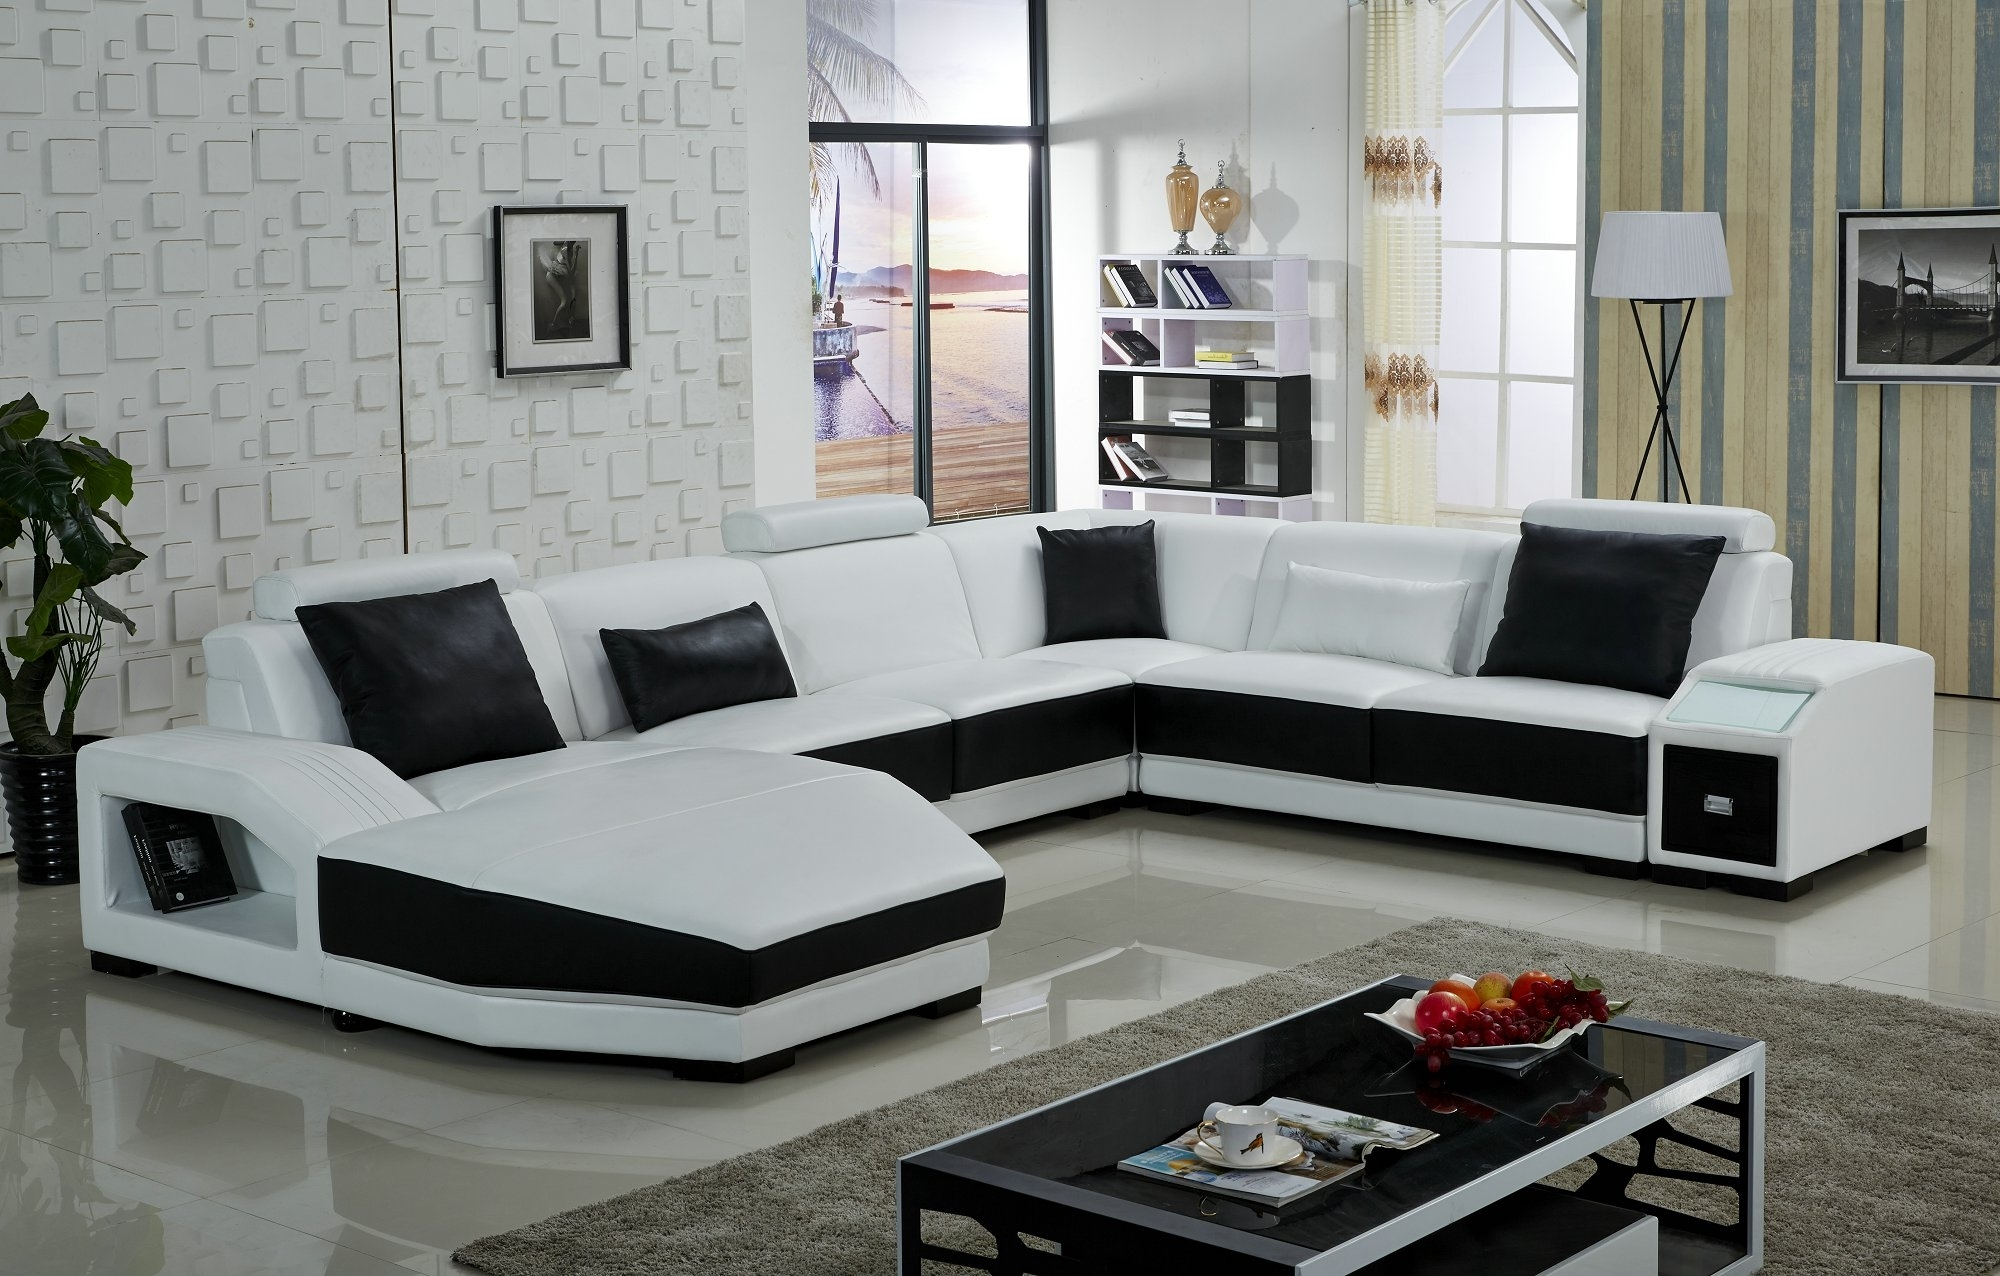 Best And Newest Sofa : U Shaped Couch Ikea Sofa Bed U Shaped Sectional Double With Regard To Modern U Shaped Sectional Sofas (View 19 of 20)